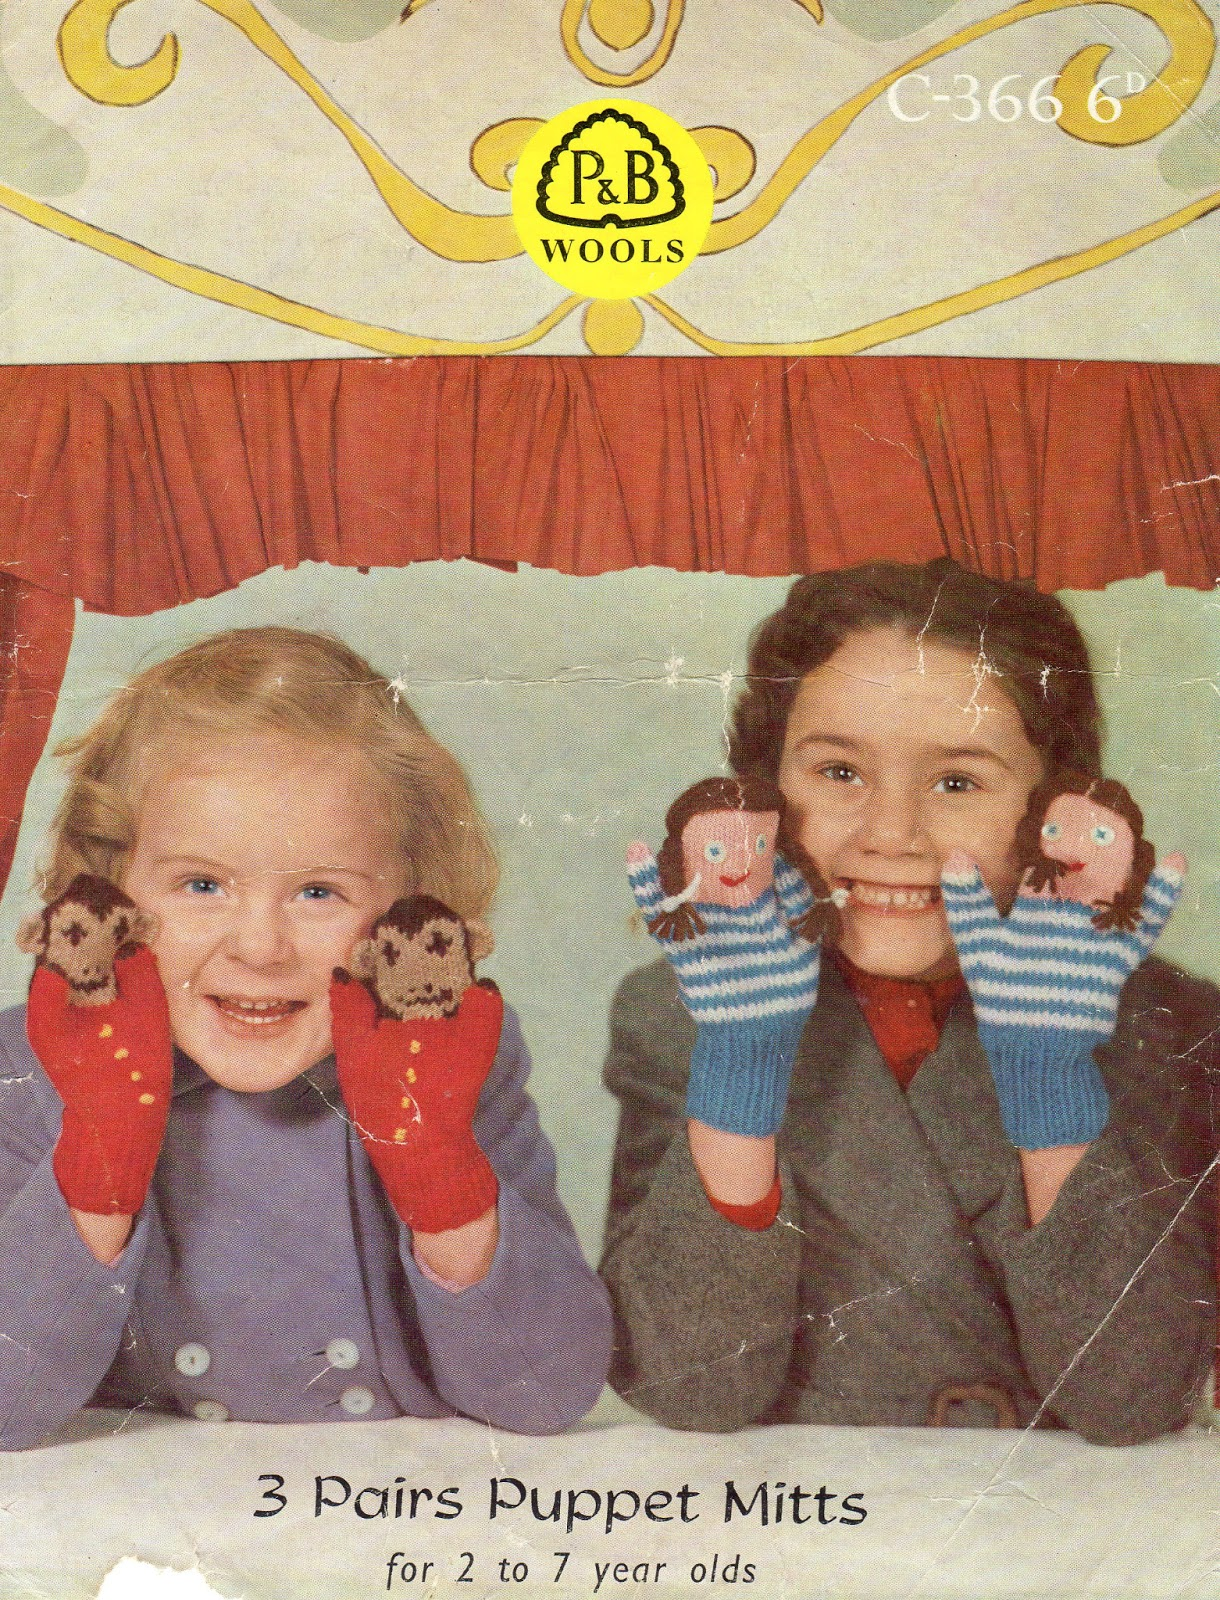 Puppet Gloves Knitting Pattern : Marilla Walker: Puppet mittens - vintage knitting pattern!